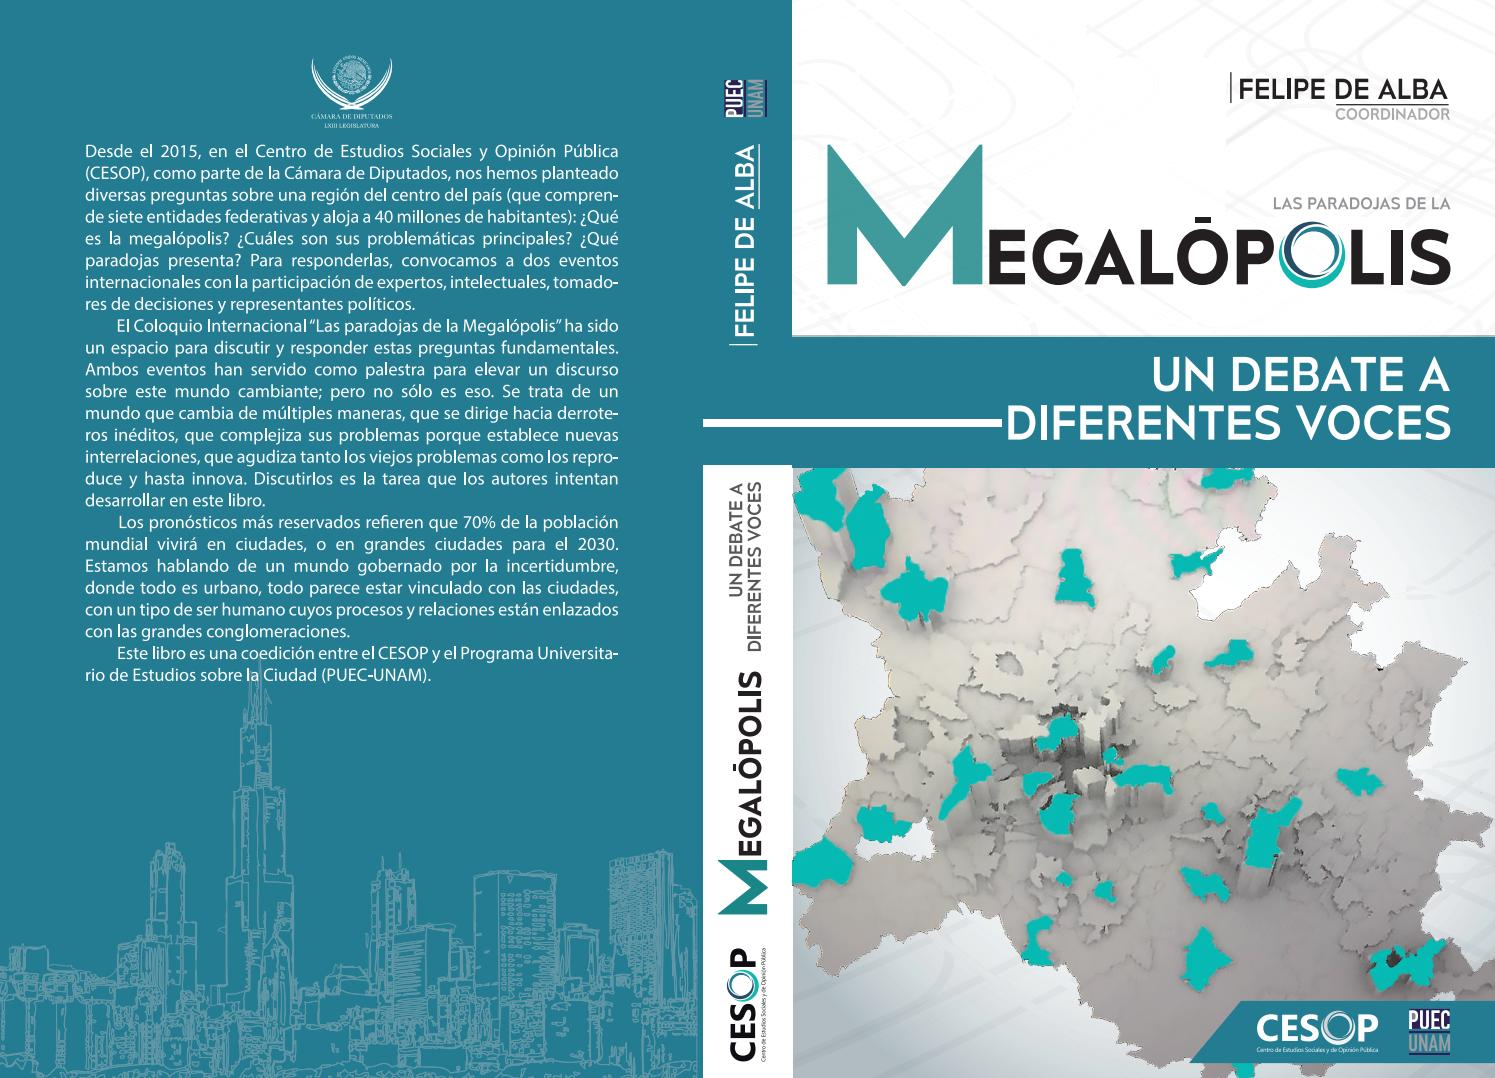 Megalopolis A Debate Between Differents Voices By Felipe De Alba  # Arregla Muebles Ehs Opiniones